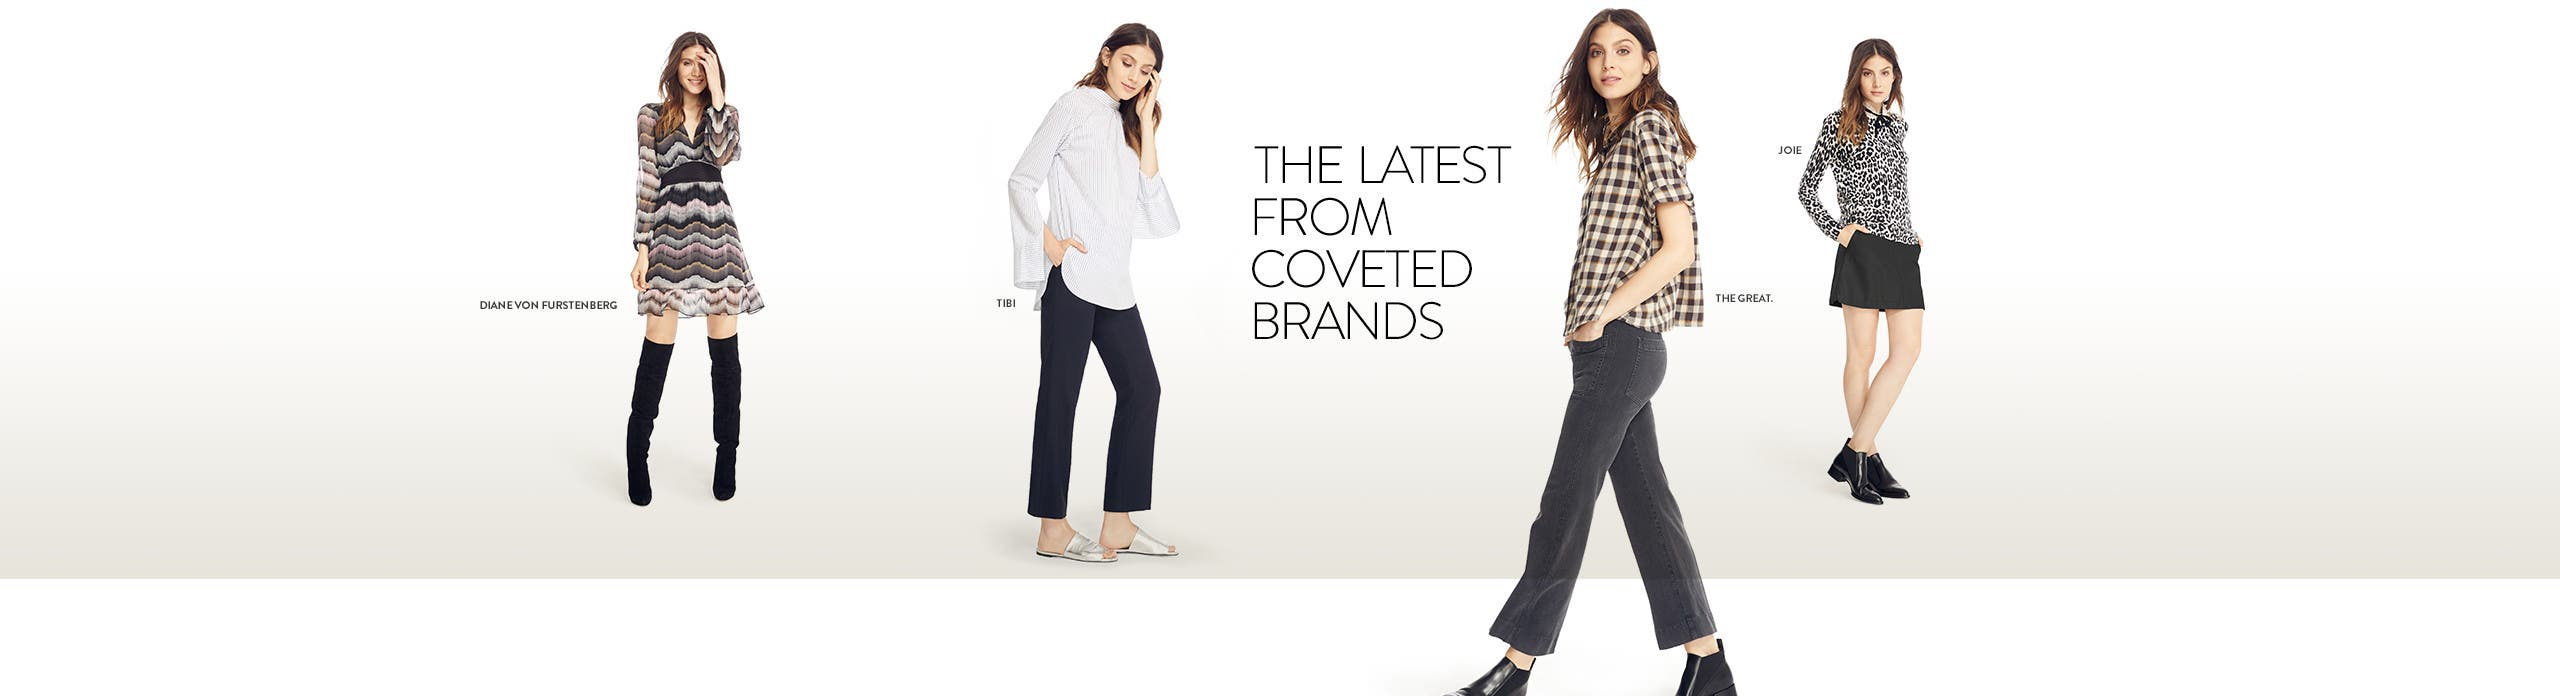 The latest contemporary women's clothing from coveted labels like Tibi, Diane von Furstenberg, Joie and The Great.